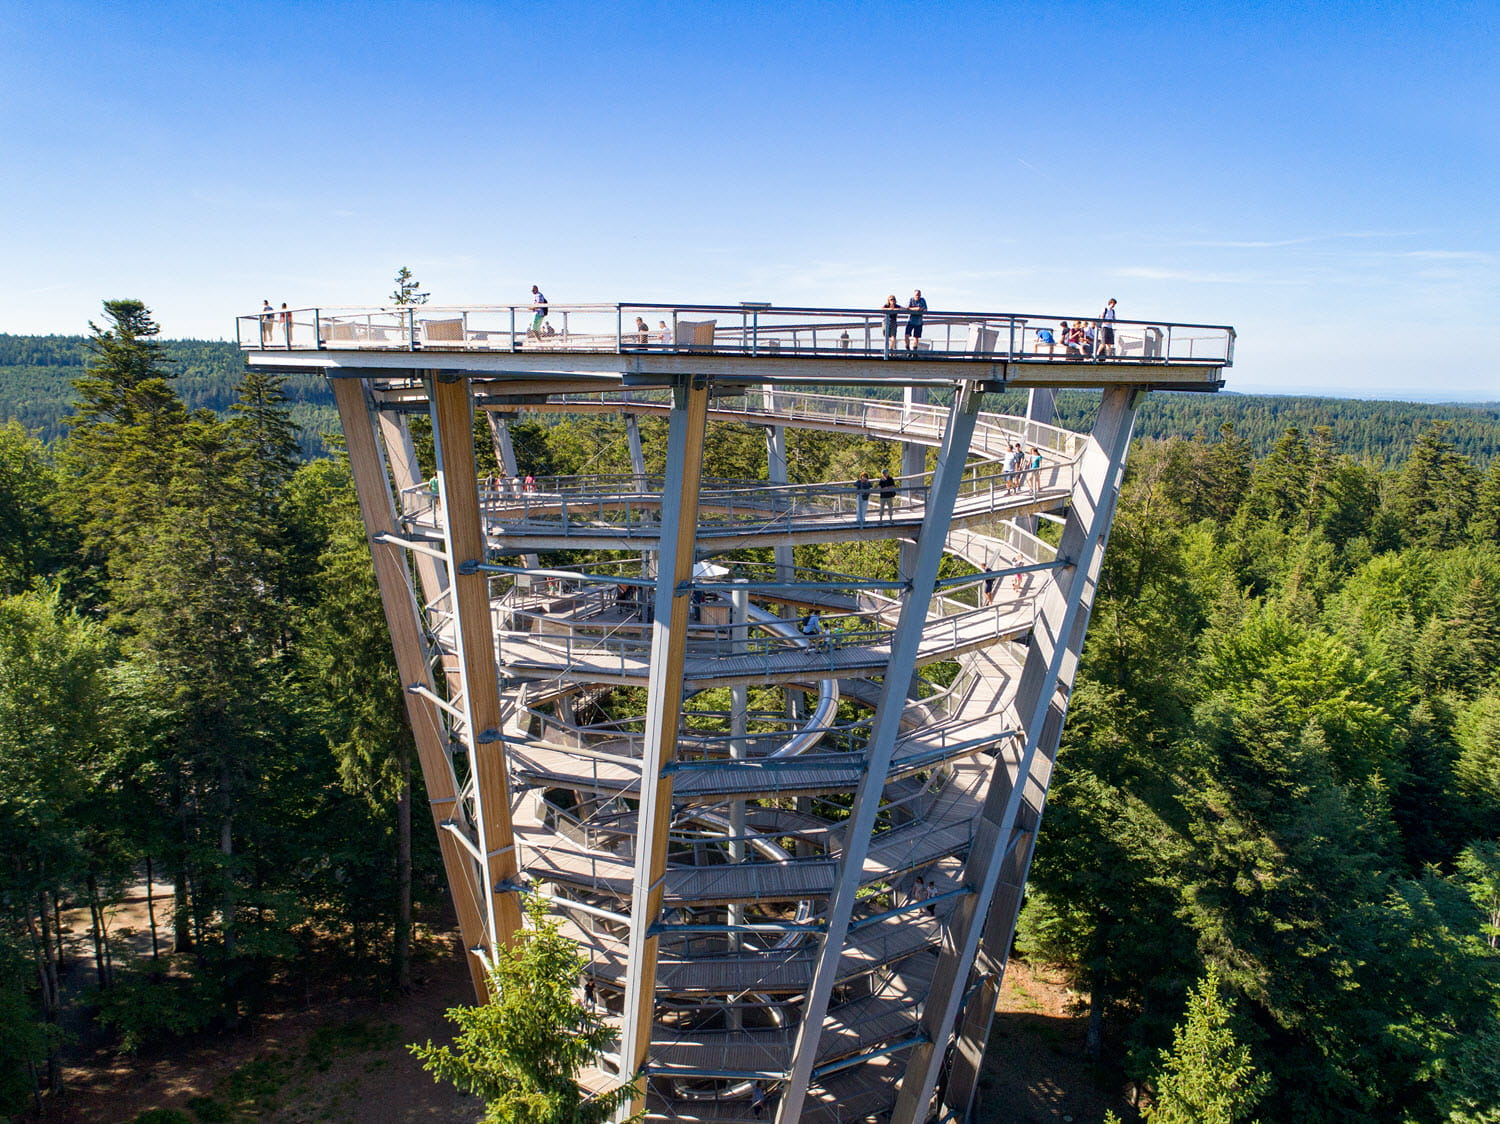 Look-out tower in Bad Wildbad (Source: Erlebnis Akademie AG)